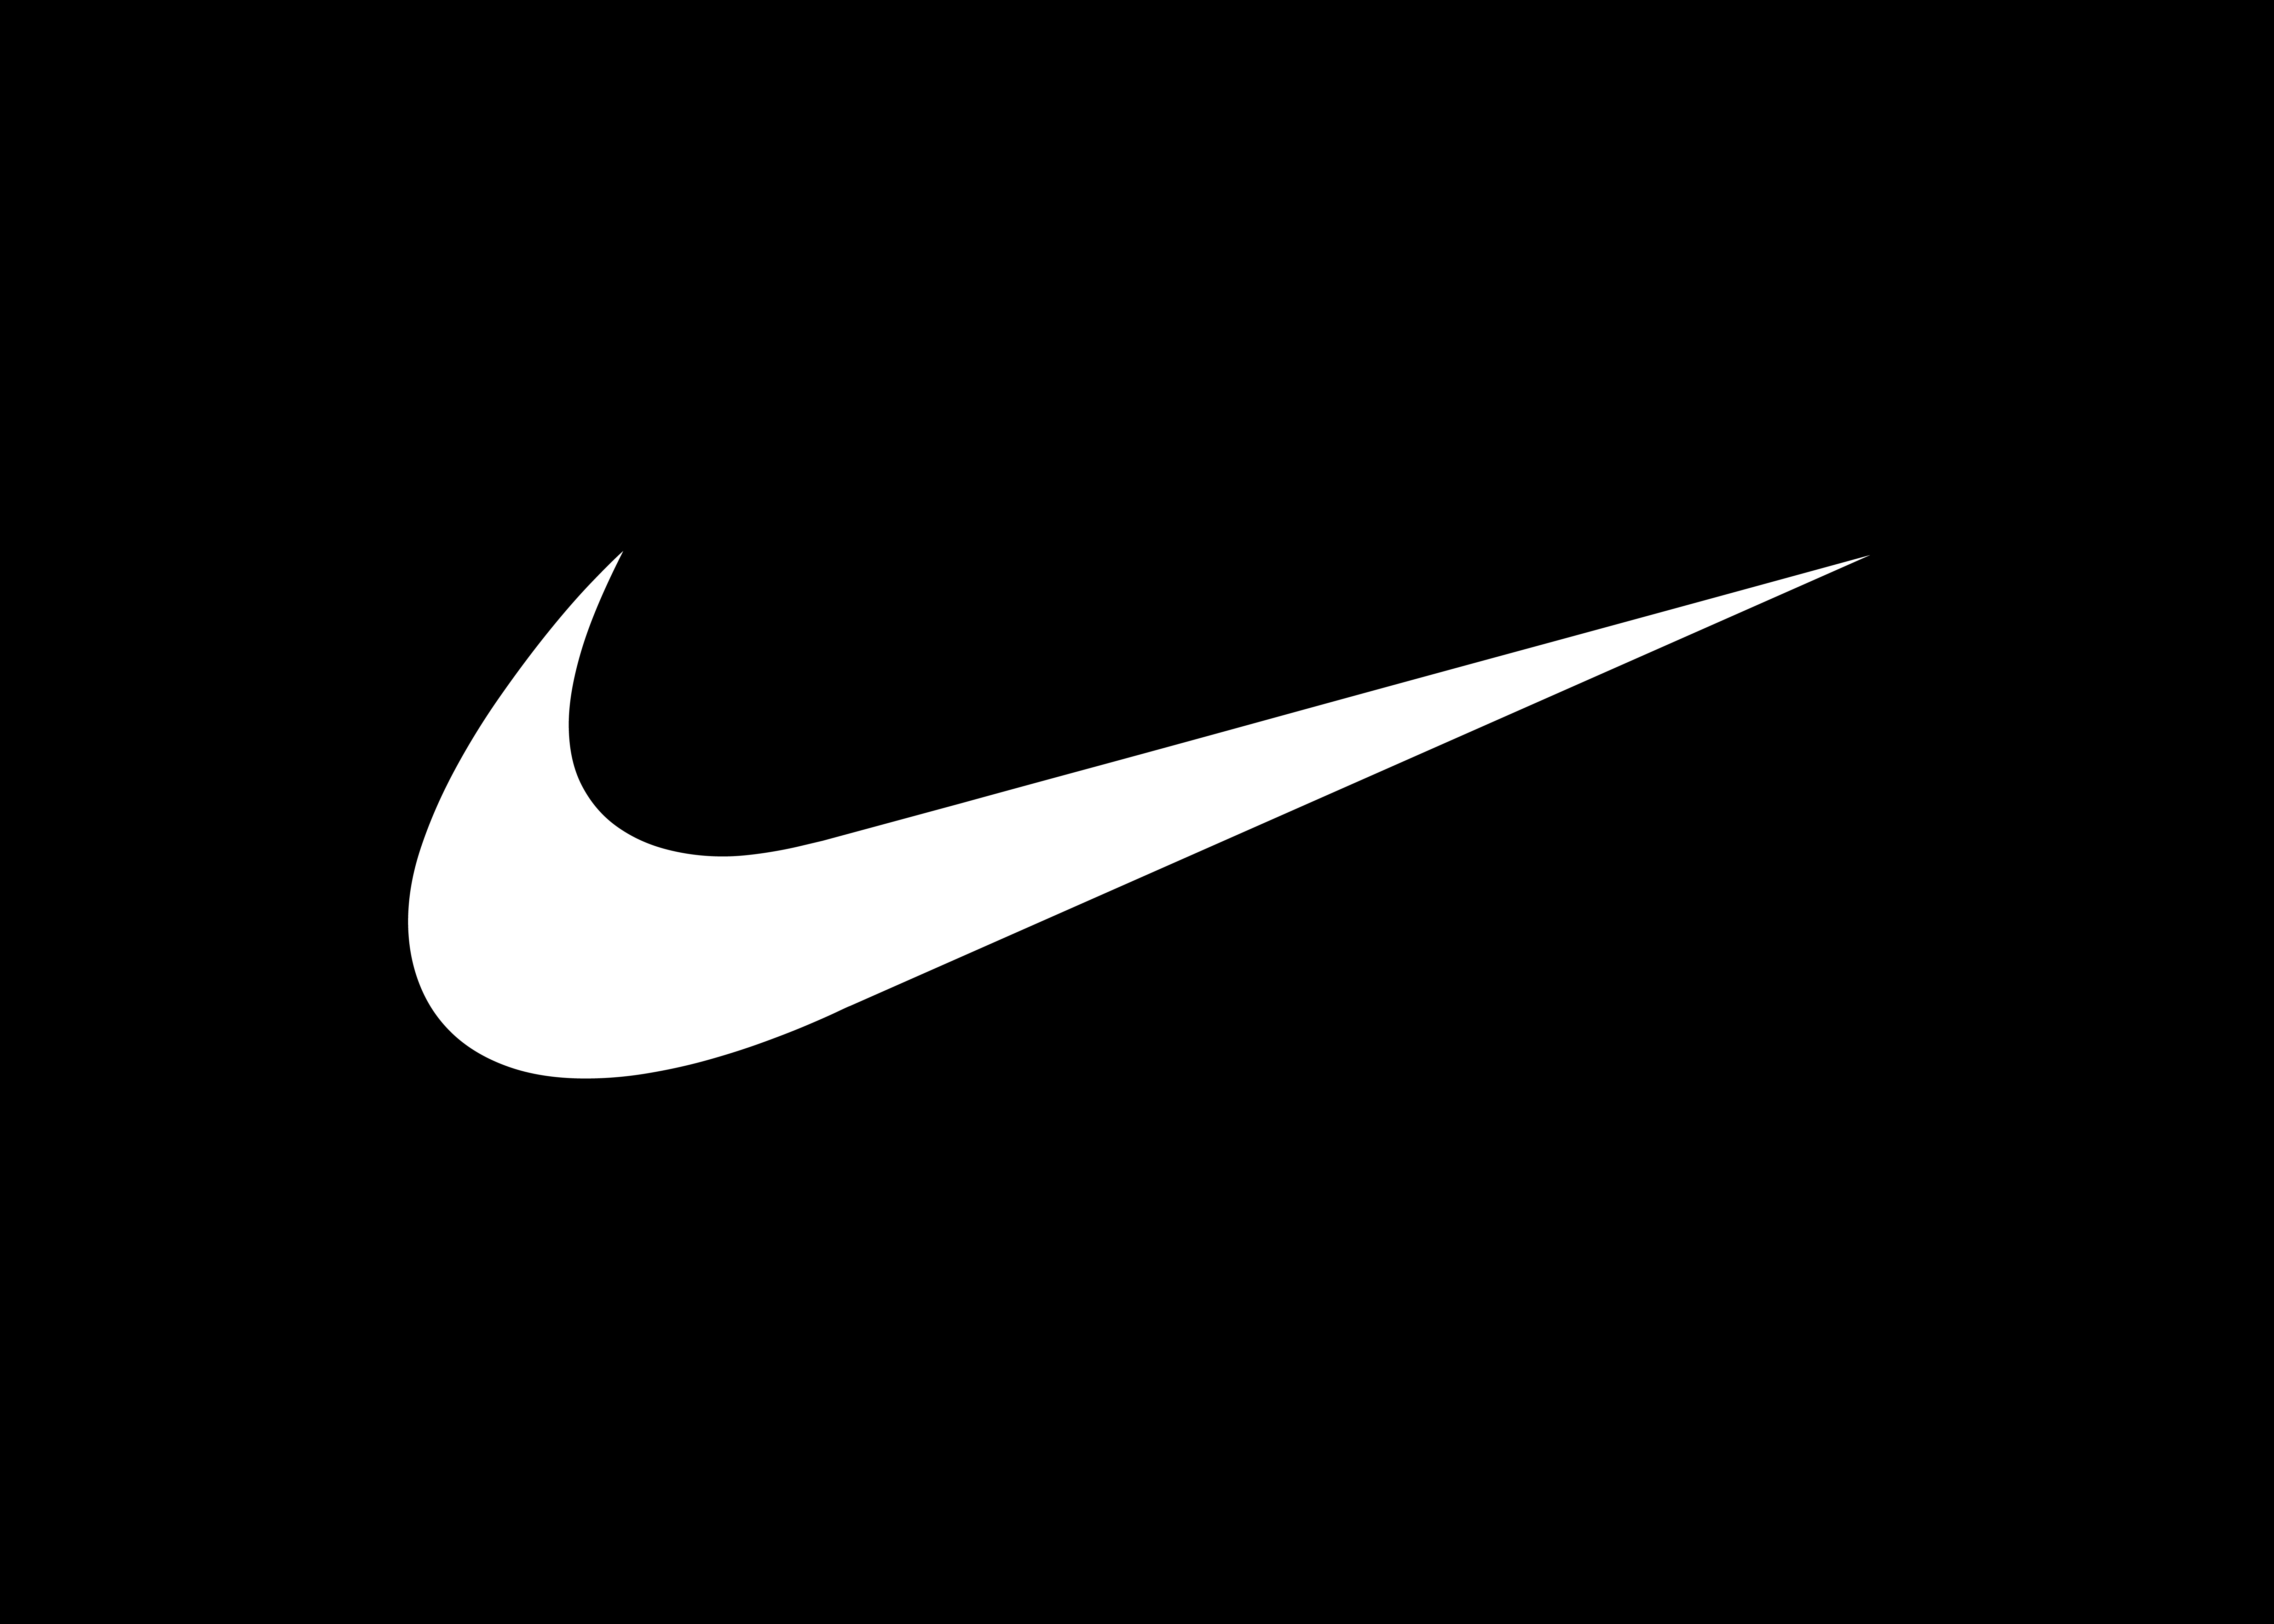 White And Black Nike Logo High Resolution In HD Wallpaper Widescreen 7216x5154